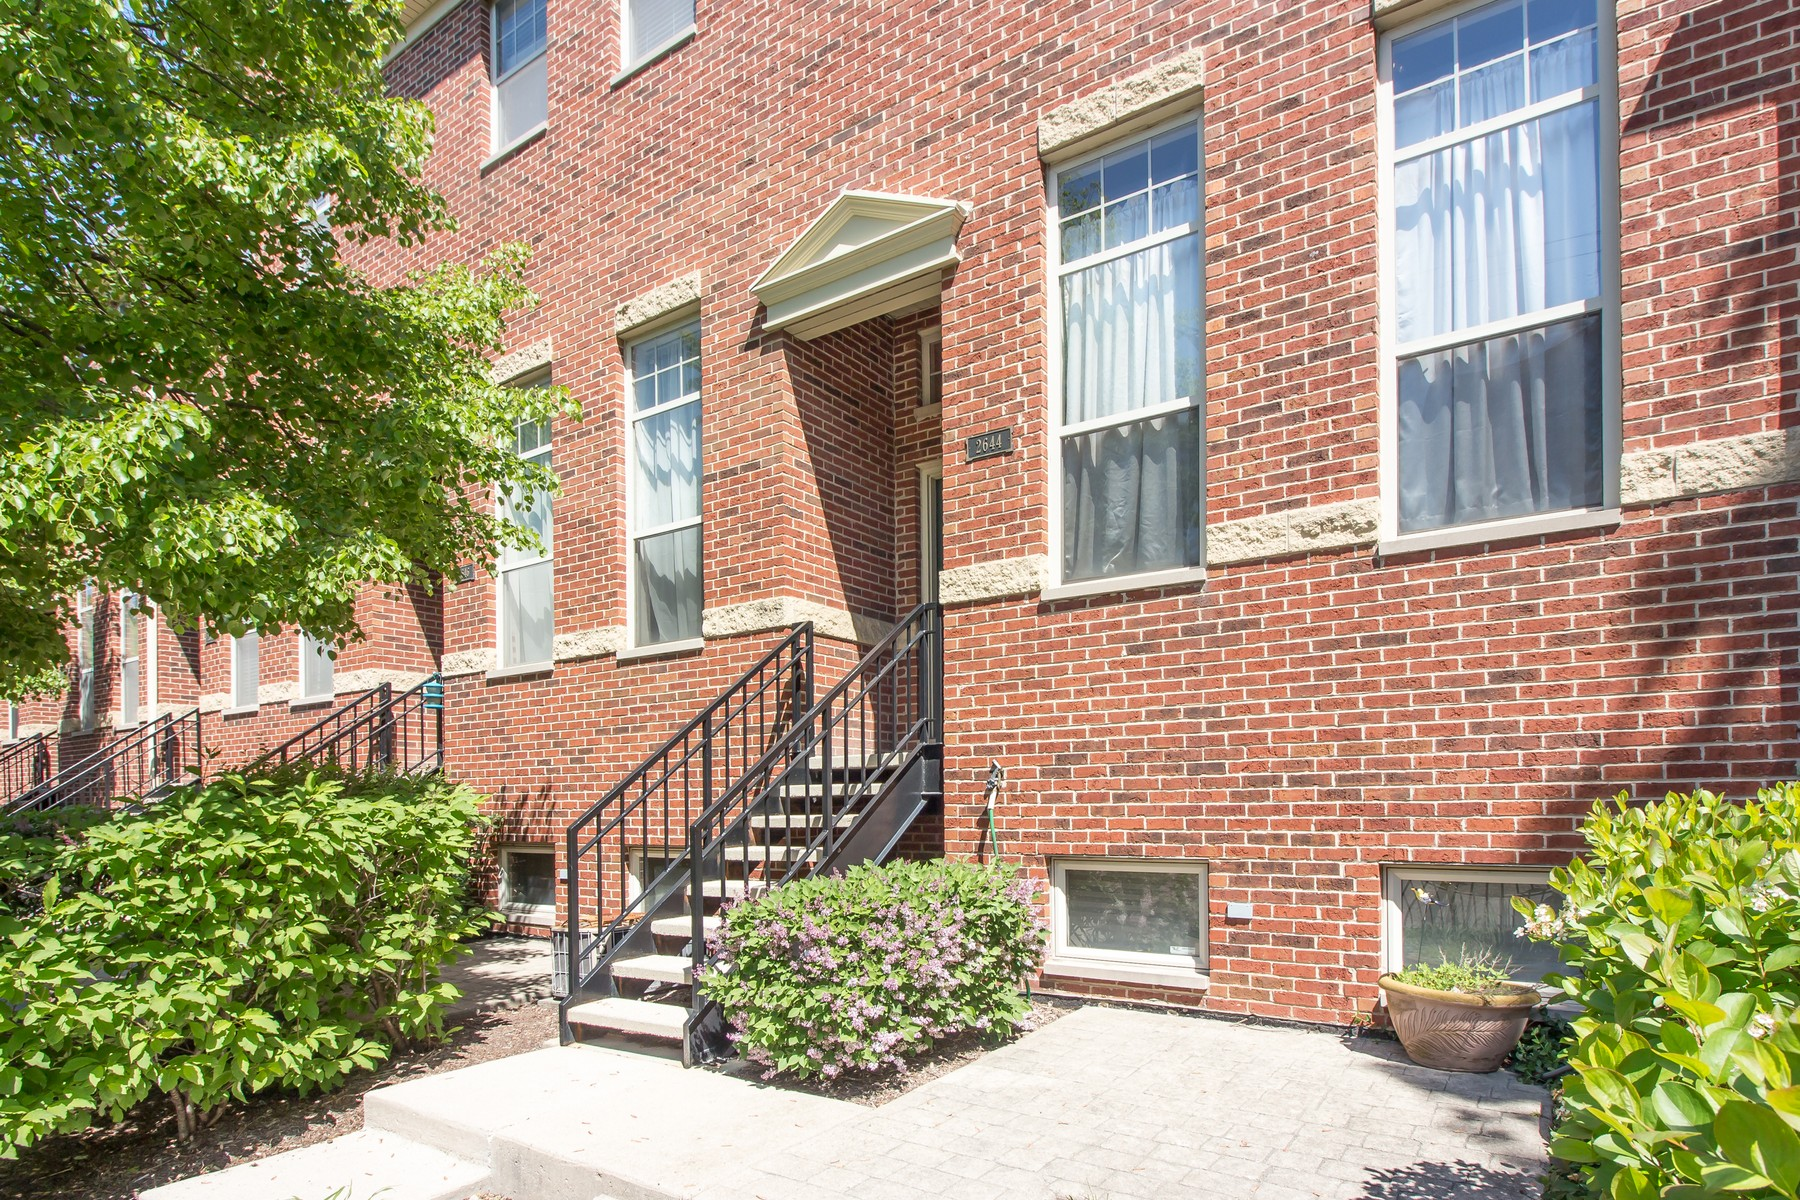 Townhouse for Sale at Sunny Avondale Townhome 2644 W Belmont Avenue Avondale, Chicago, Illinois, 60618 United States